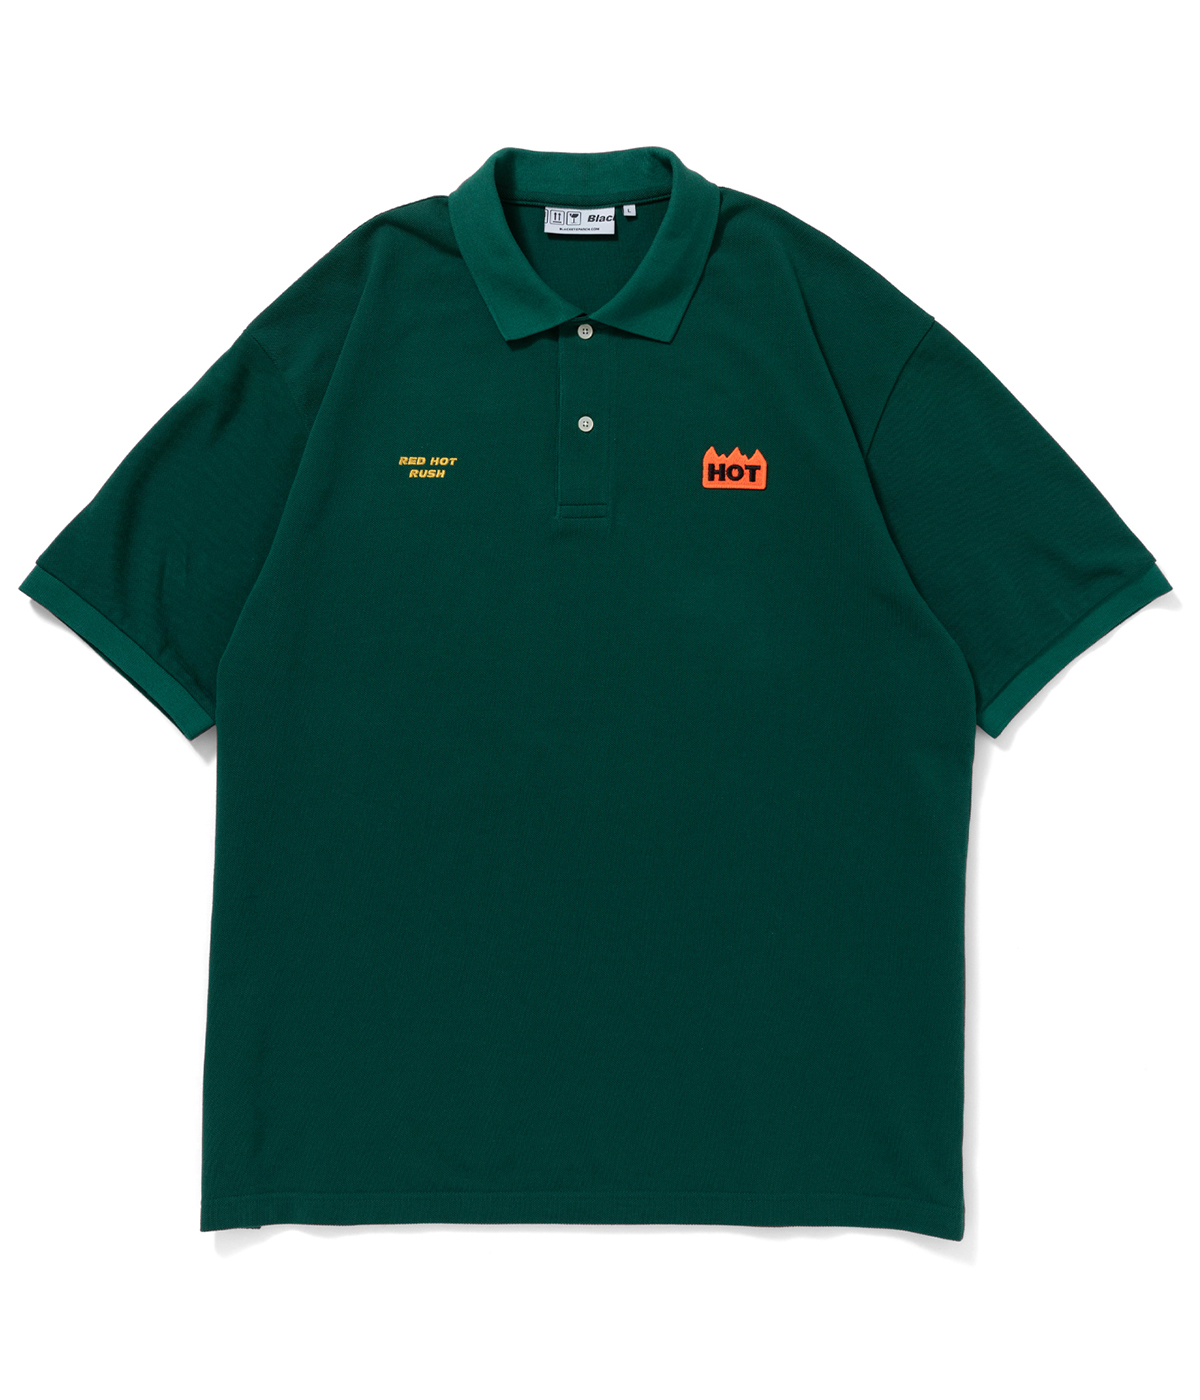 HOT LAEL POLO SHIRT